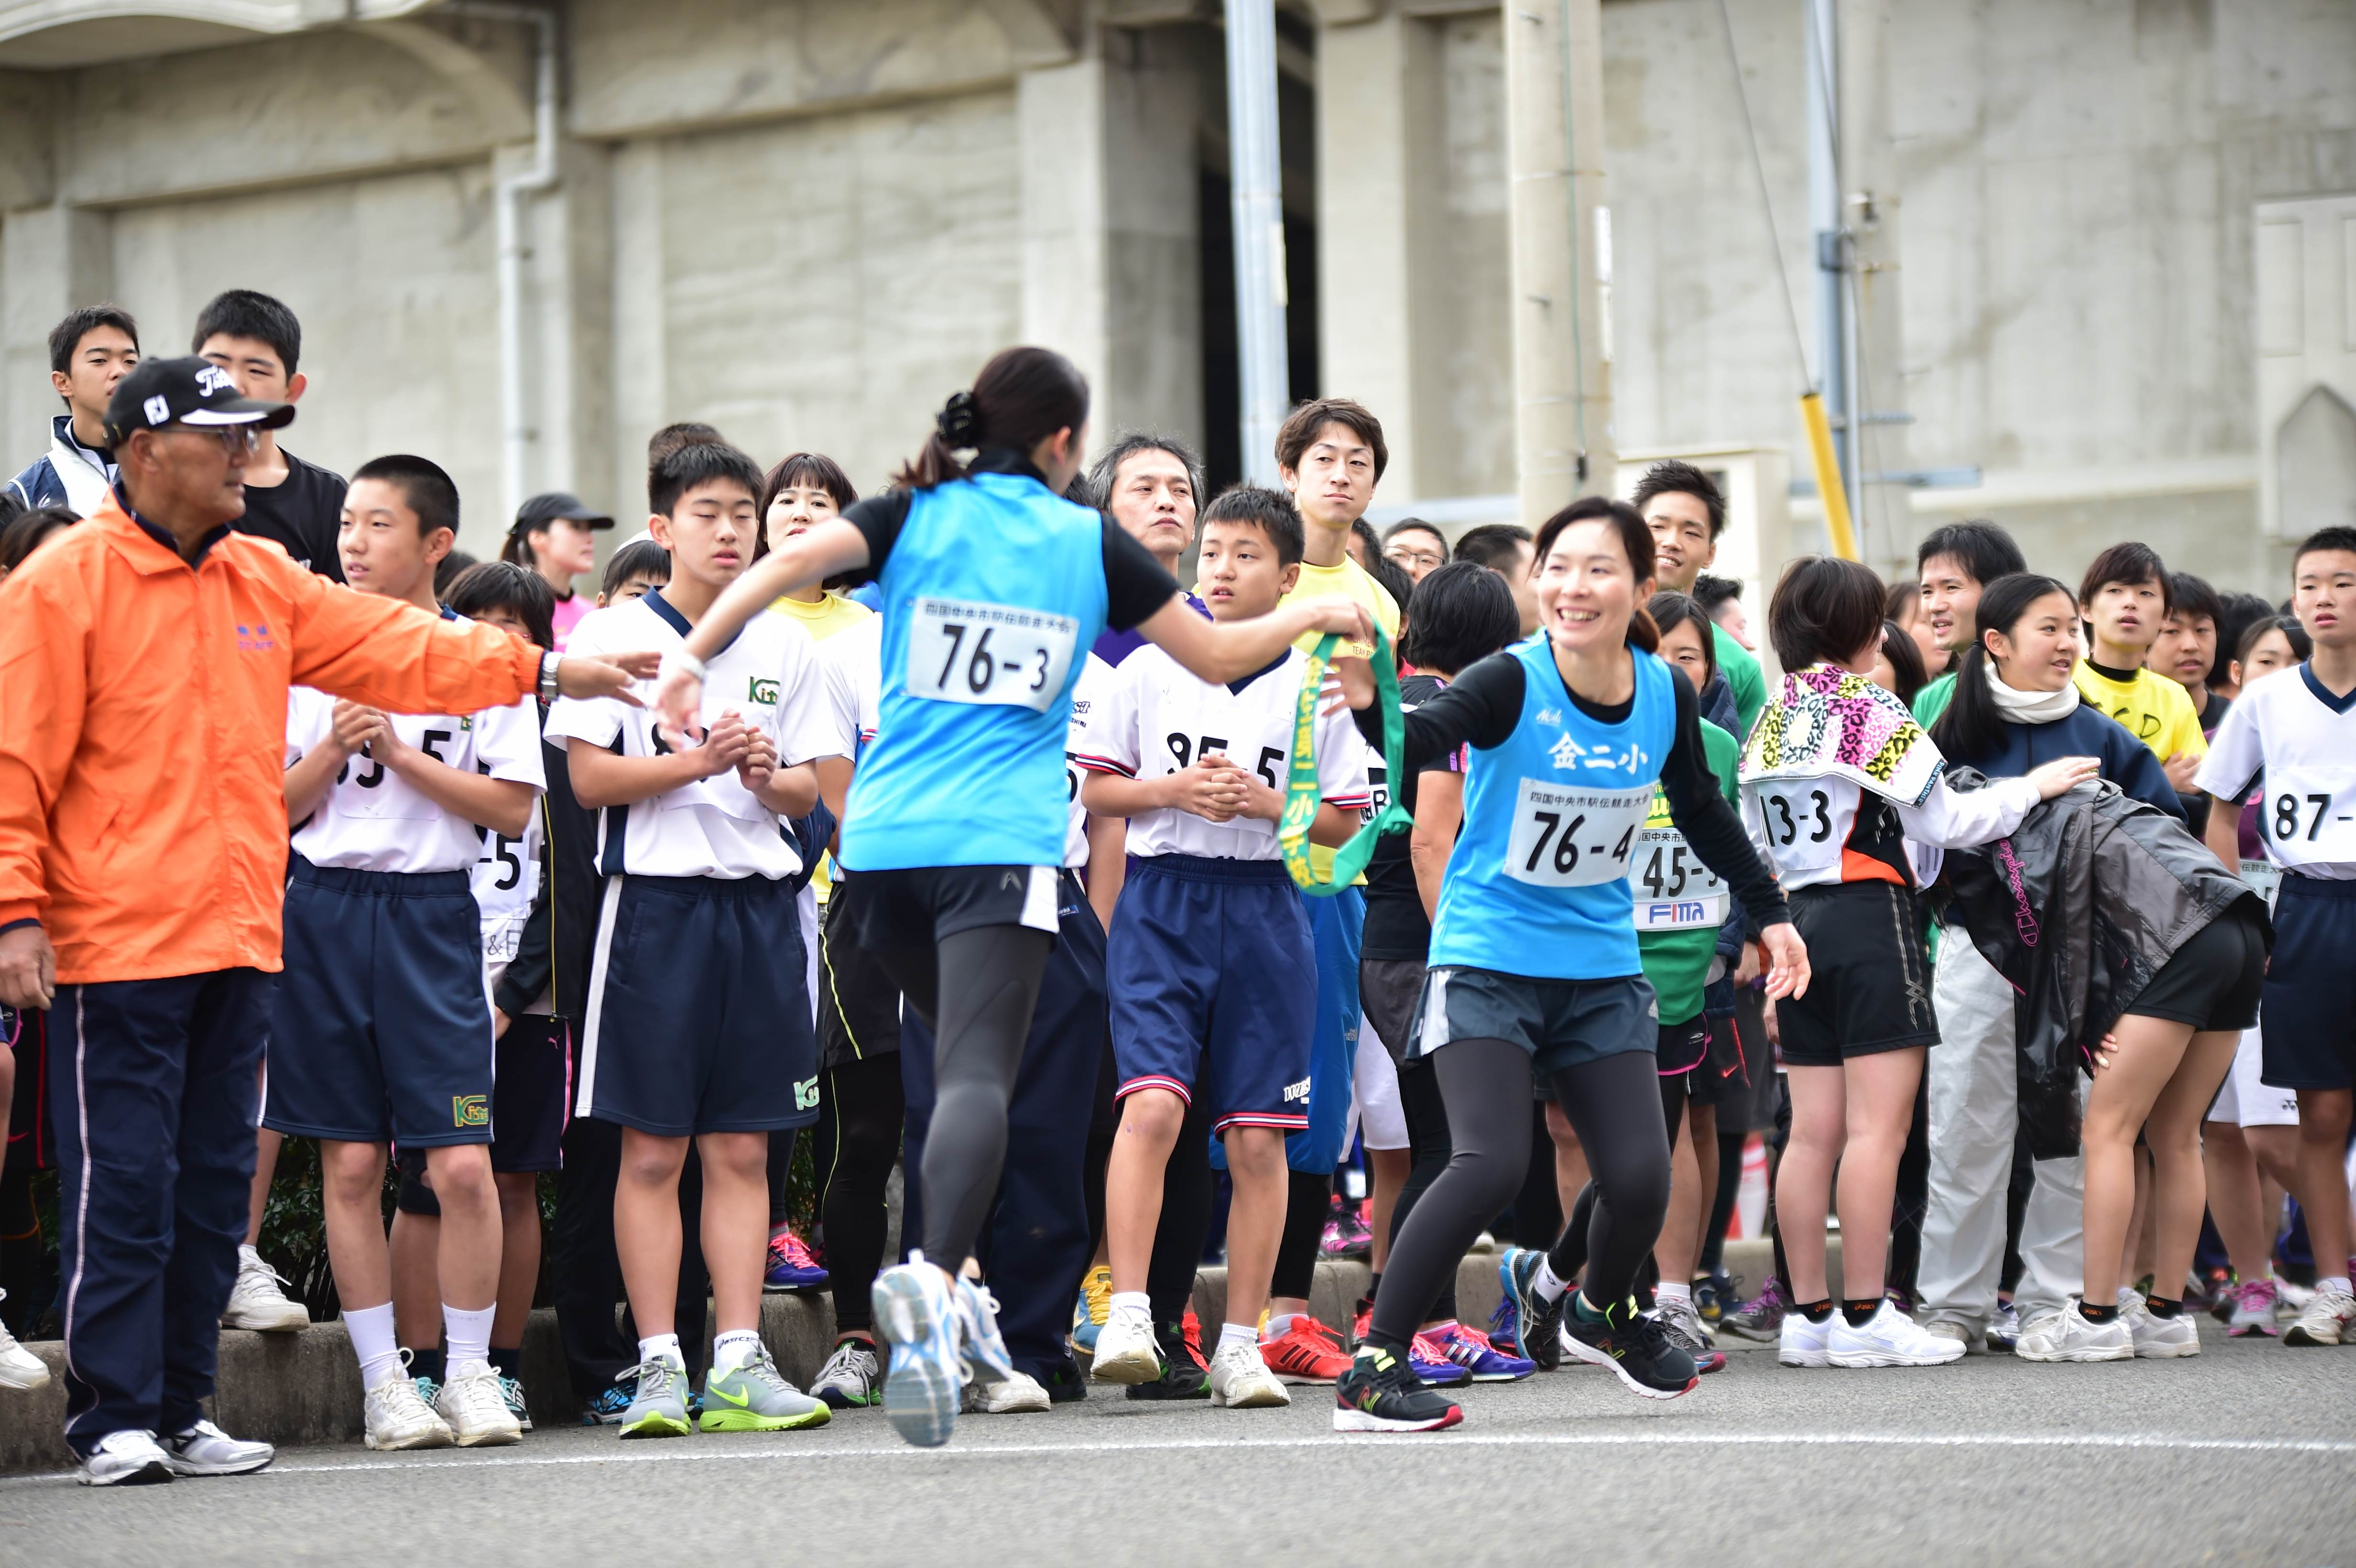 駅伝2015 (84)